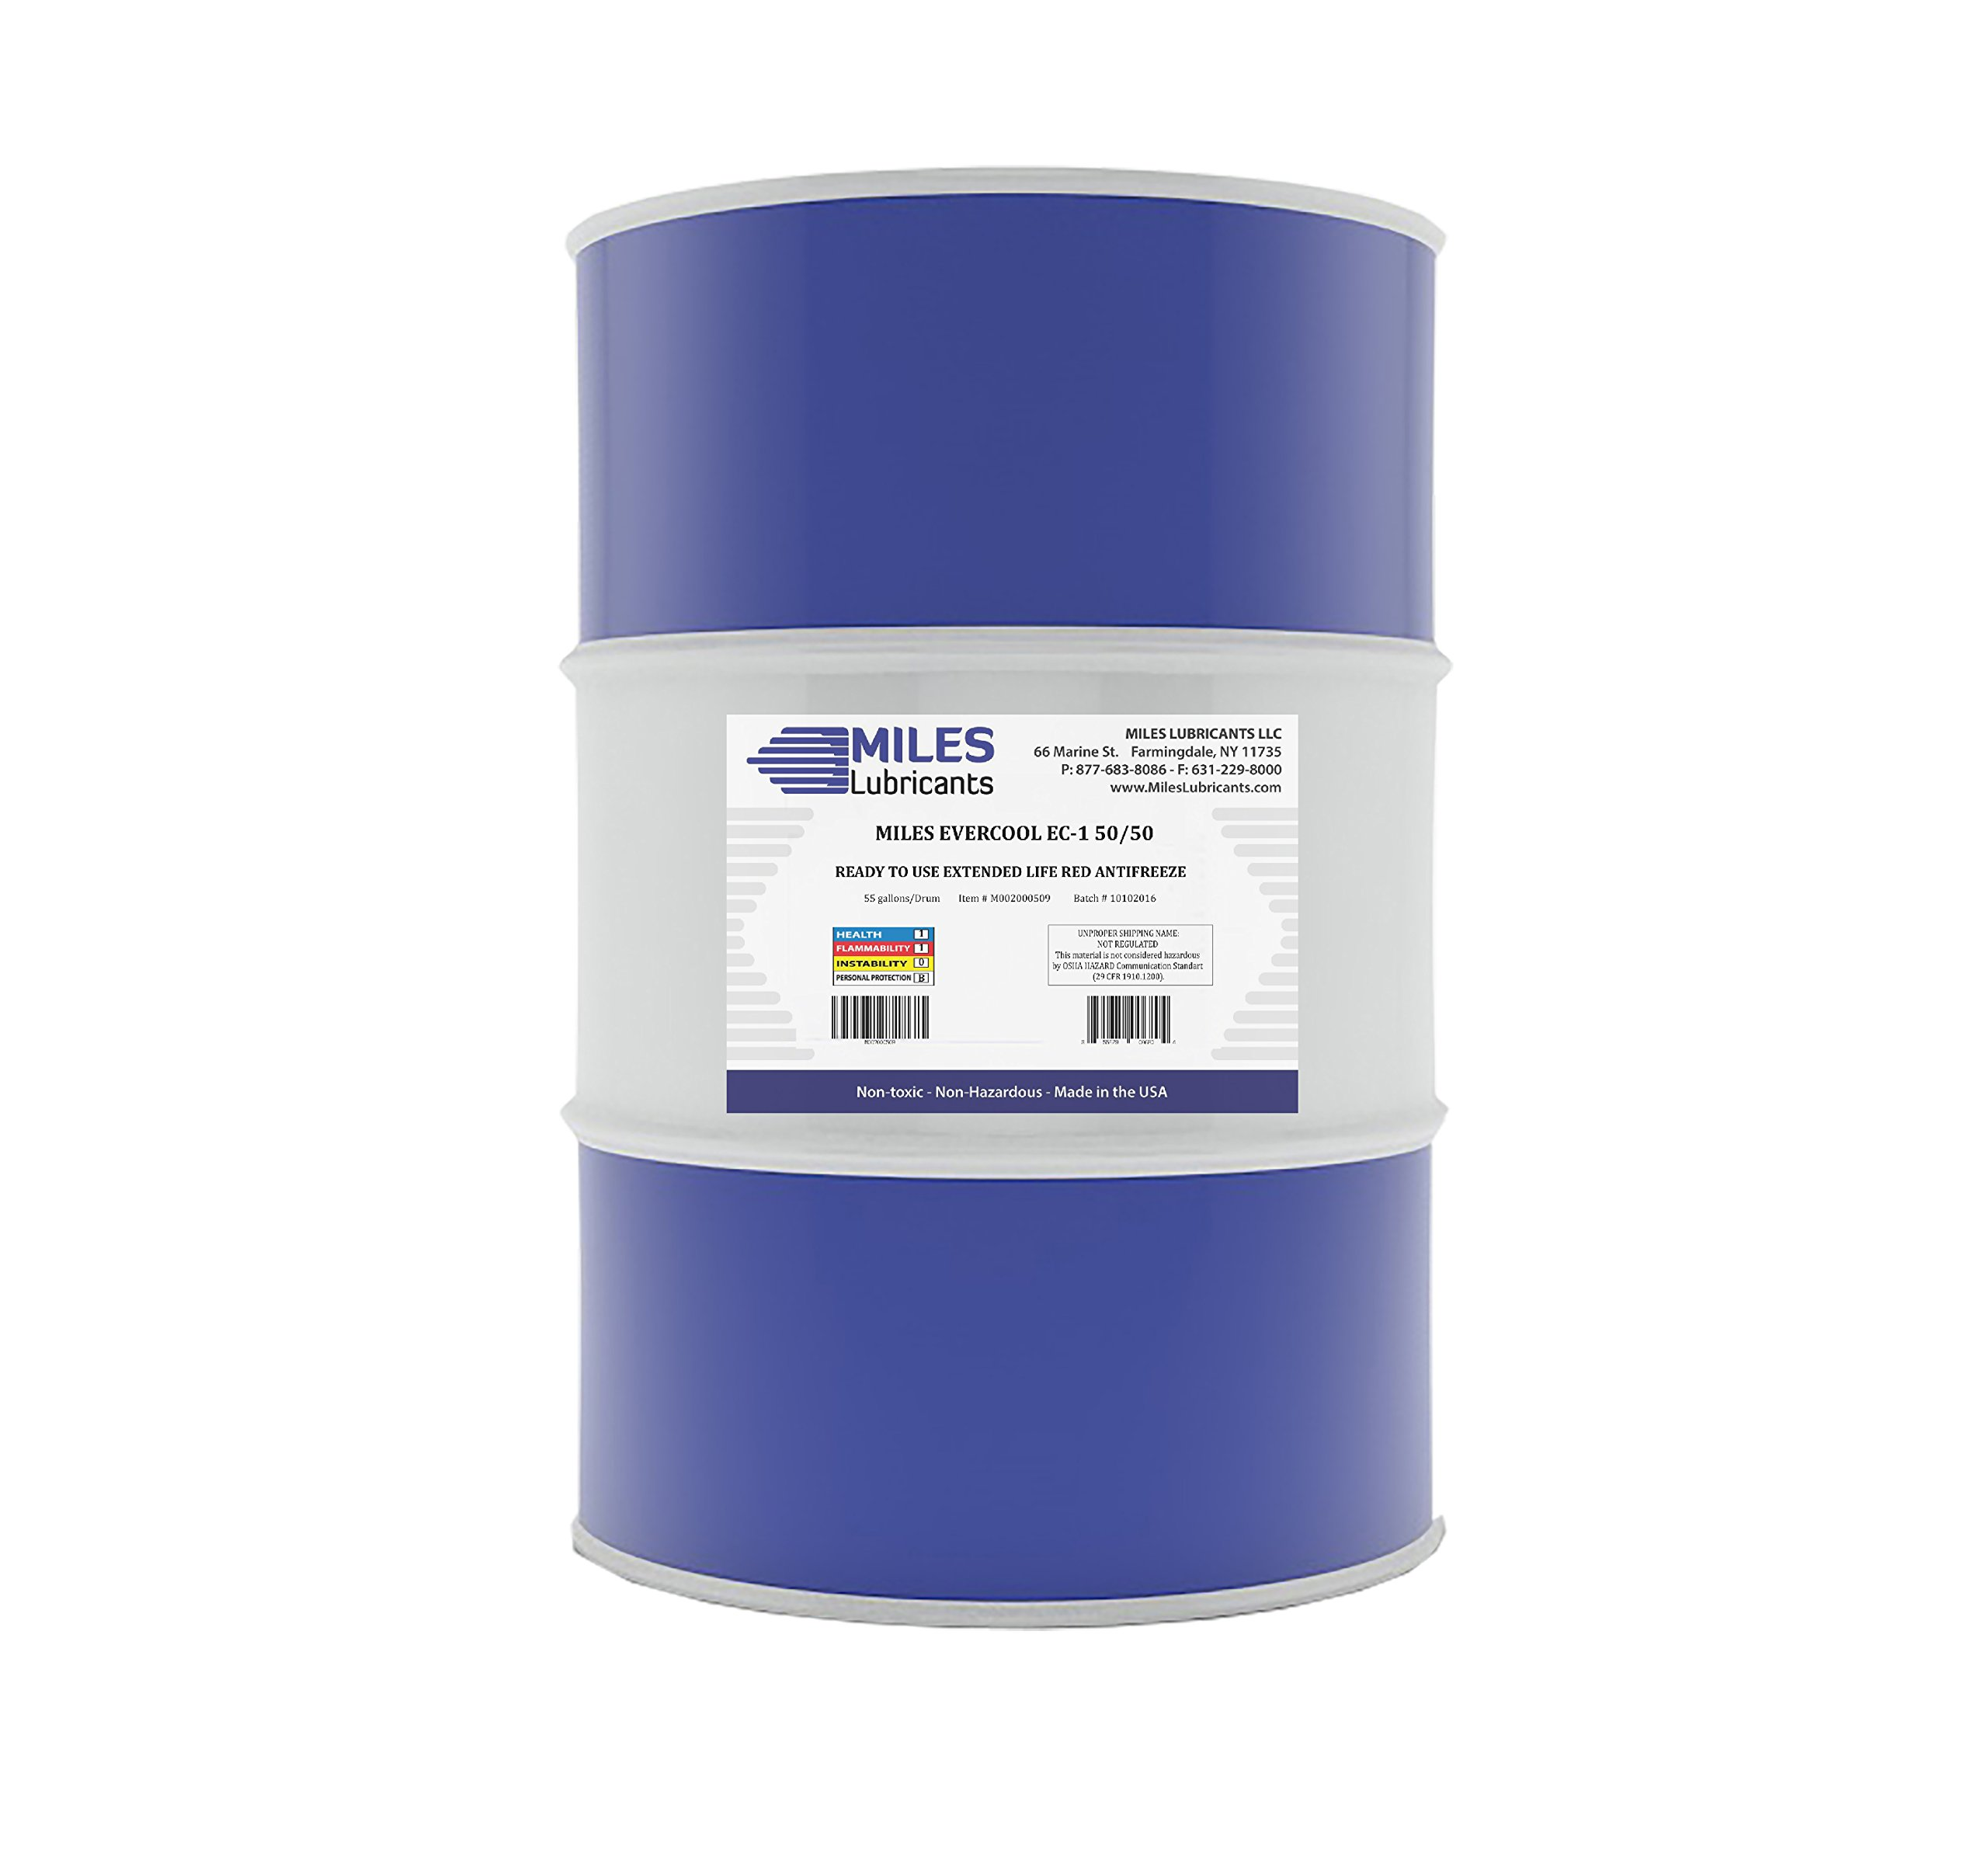 Miles Evercool Ec1 50/50 Ready To Use Extended Life Red Antifreeze 55 Gallon Drum